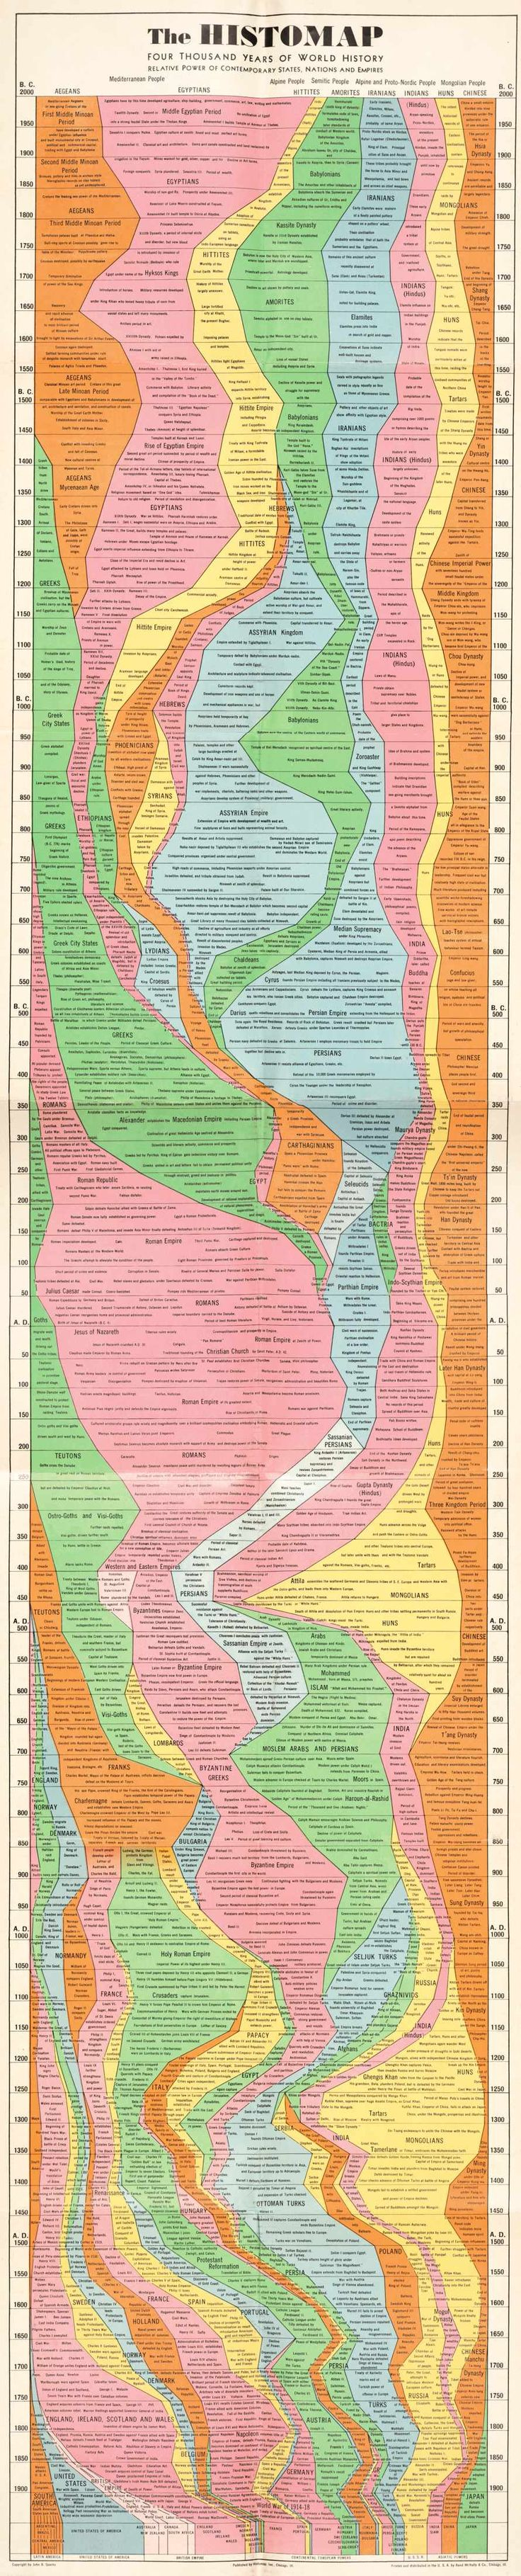 The HistoMap: Four Thousand Years of World History